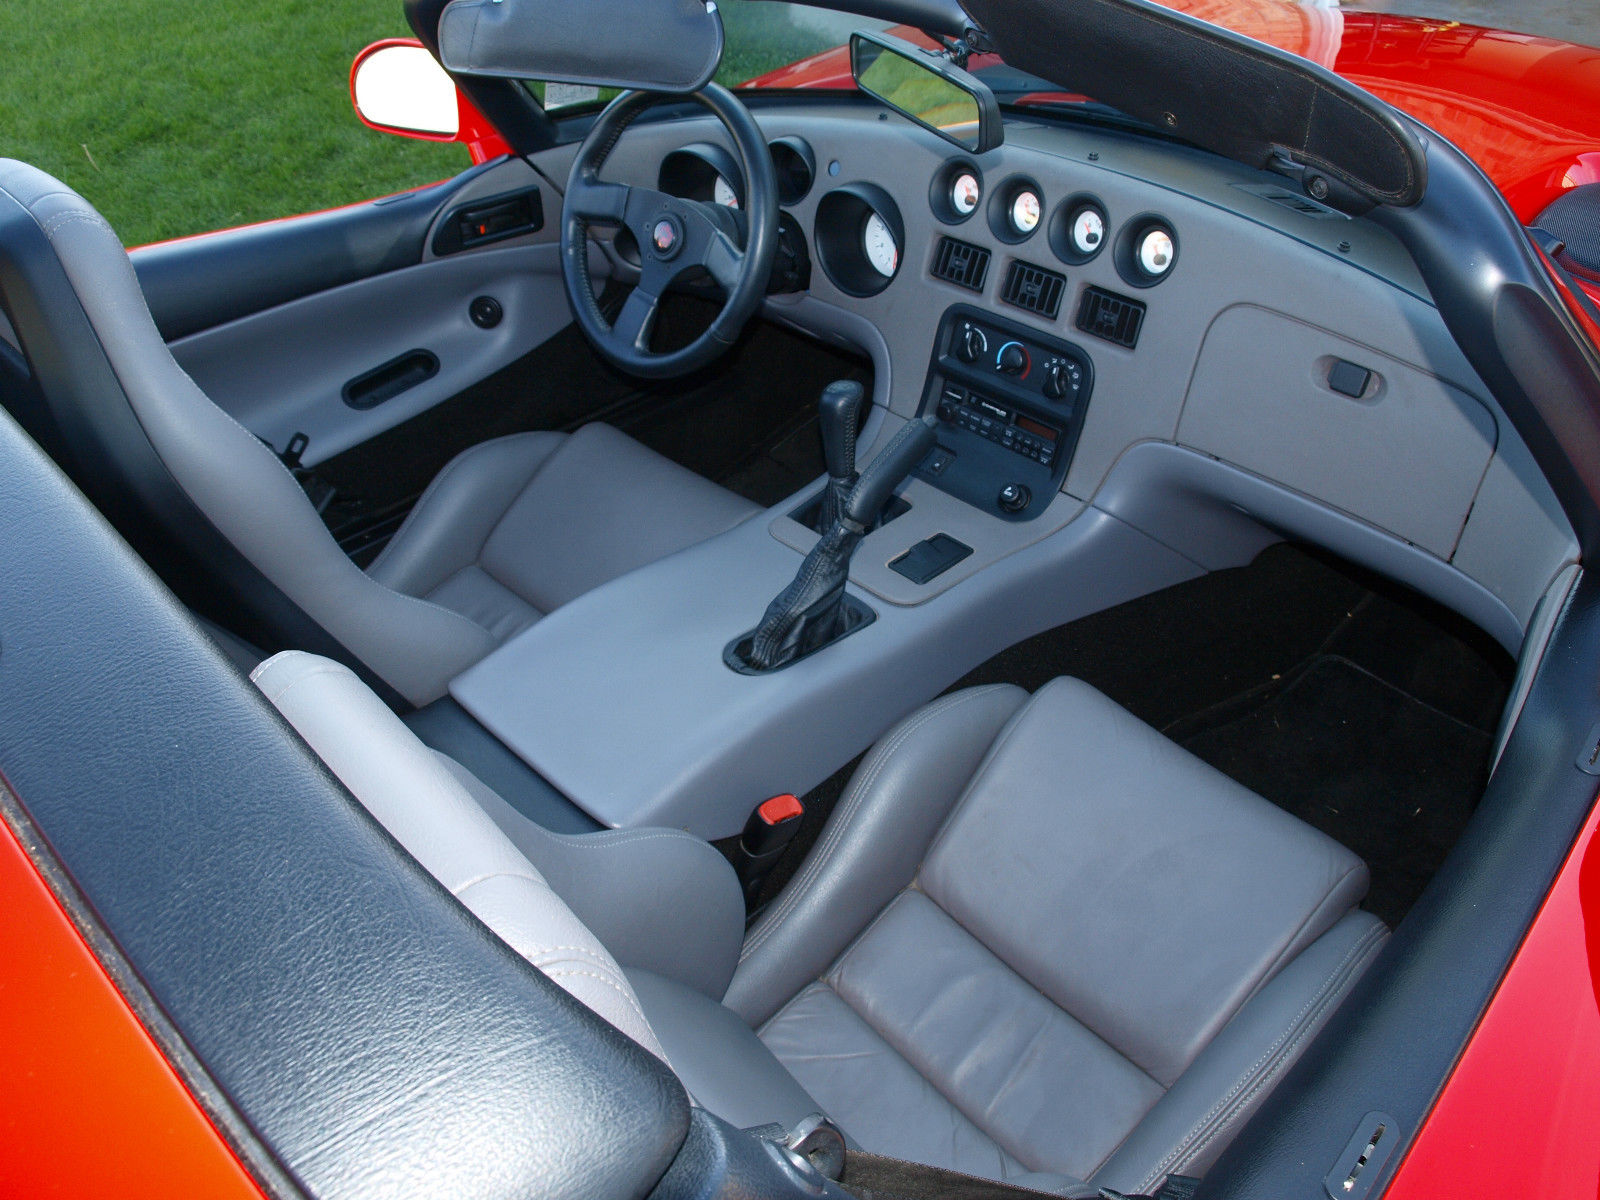 Ram Rt For Sale >> 1994 Viper with 504 Miles on eBay | Mopar Blog